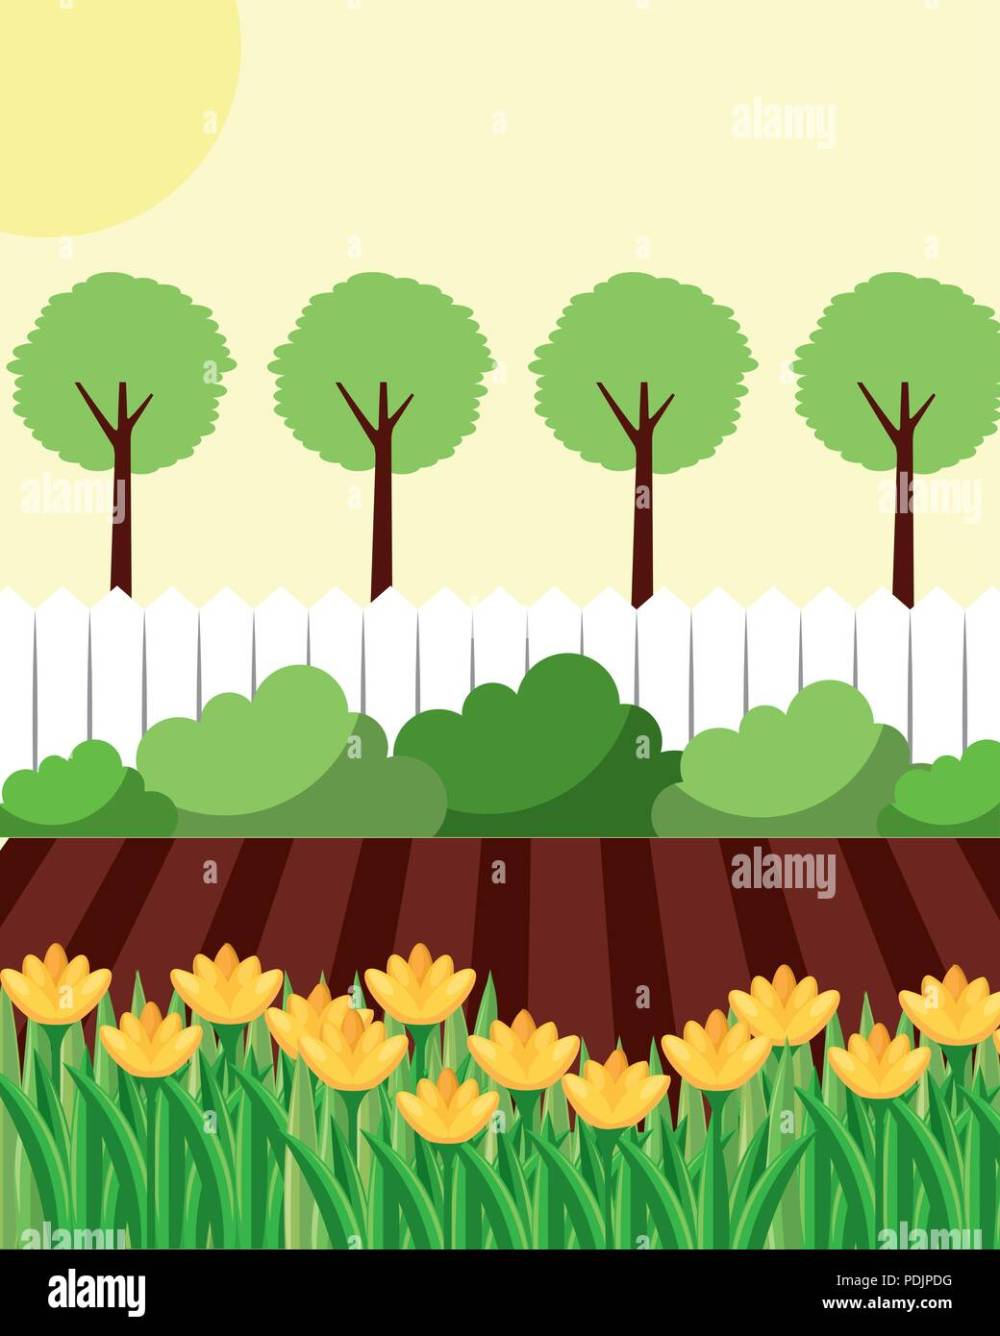 medium resolution of backyard with flowers garden fence and trees stock vector